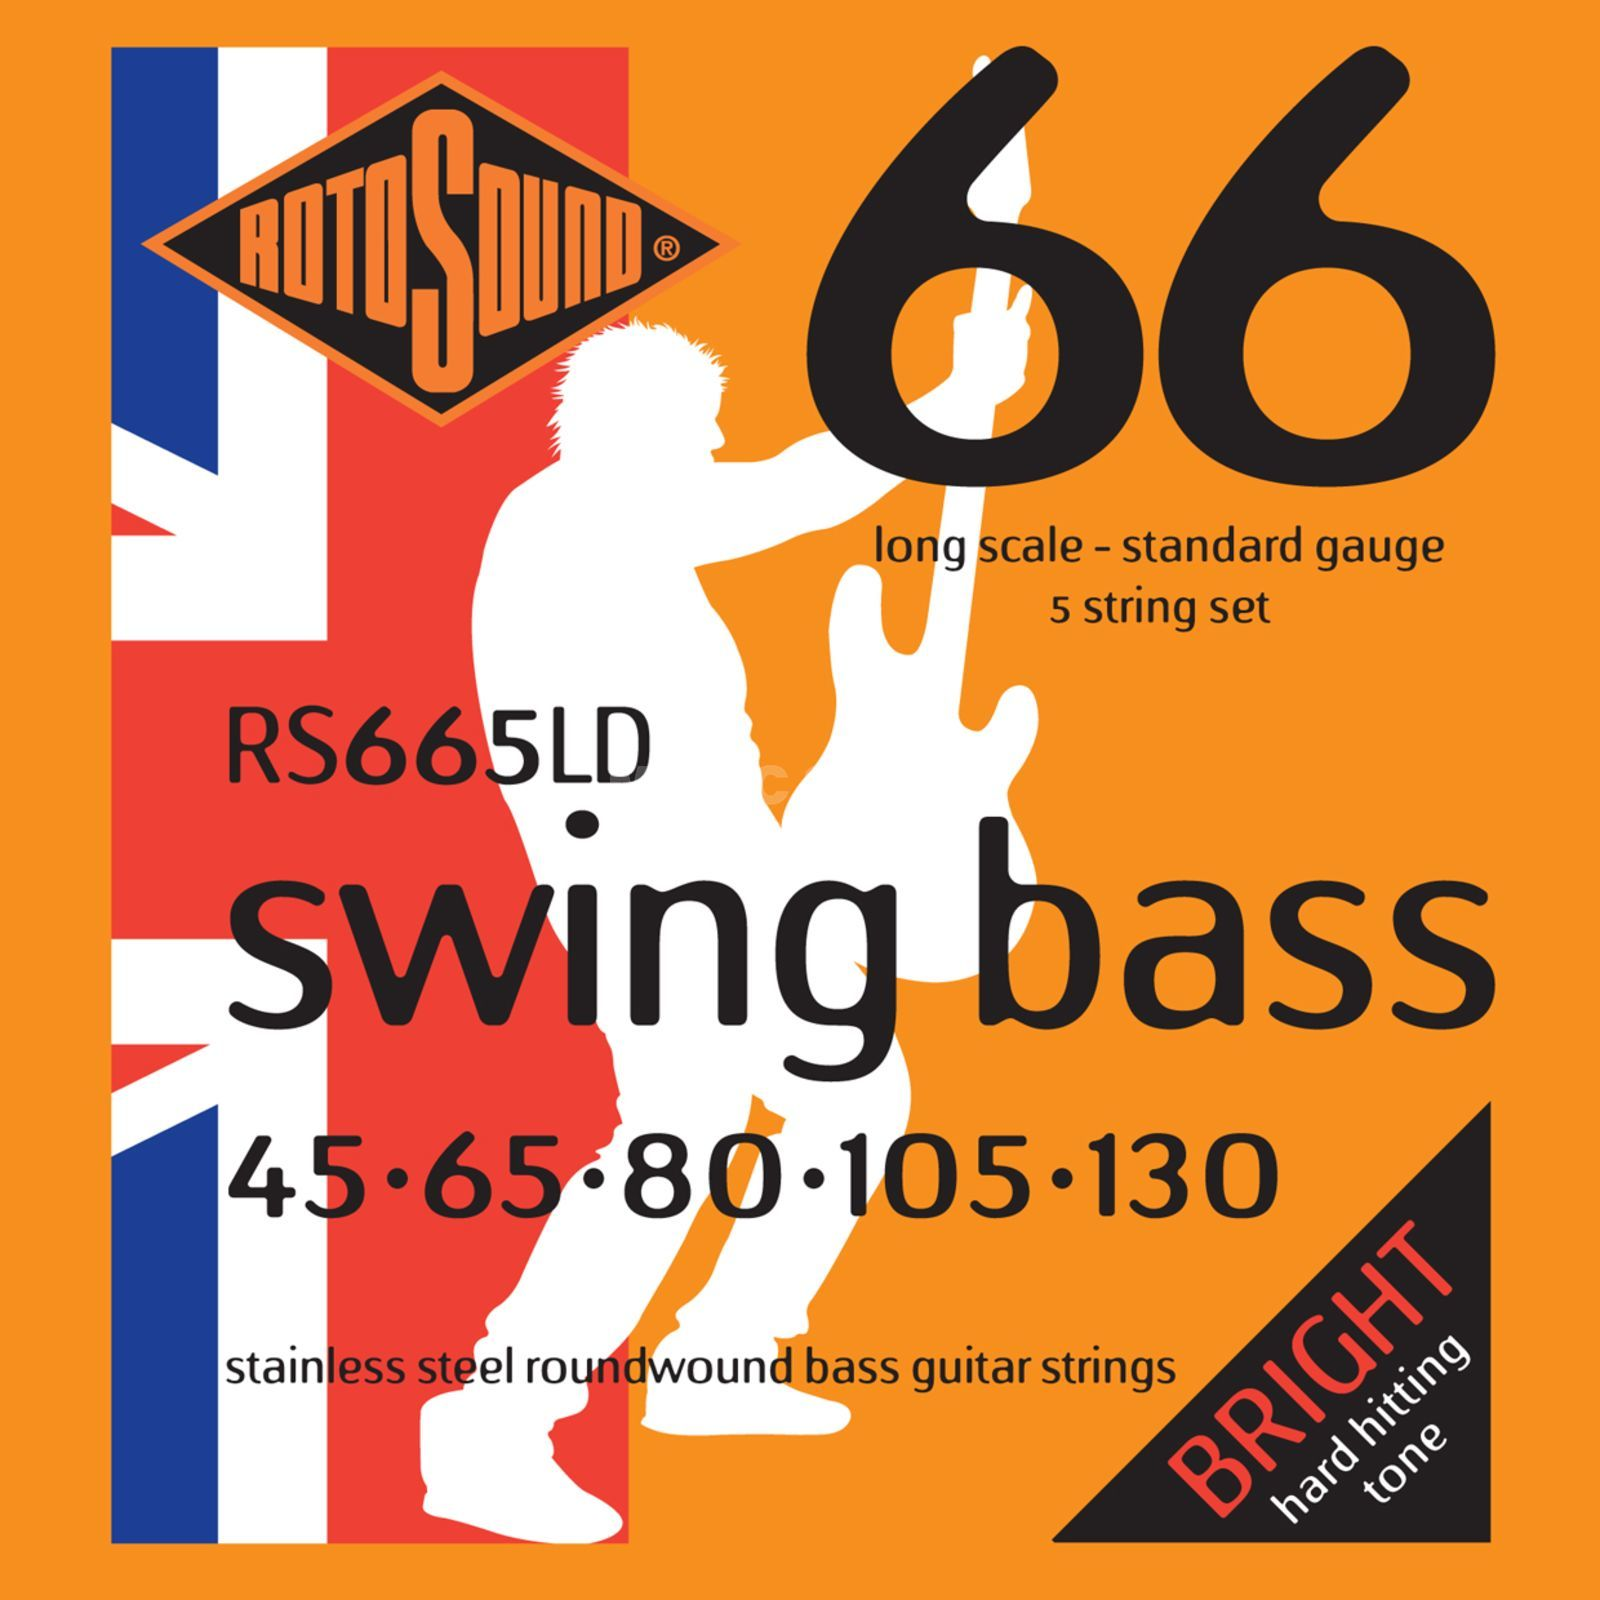 Rotosound Bass Saiten RS665LD 5er 45-130 Swing Bass 66, Stainless Steel Produktbild